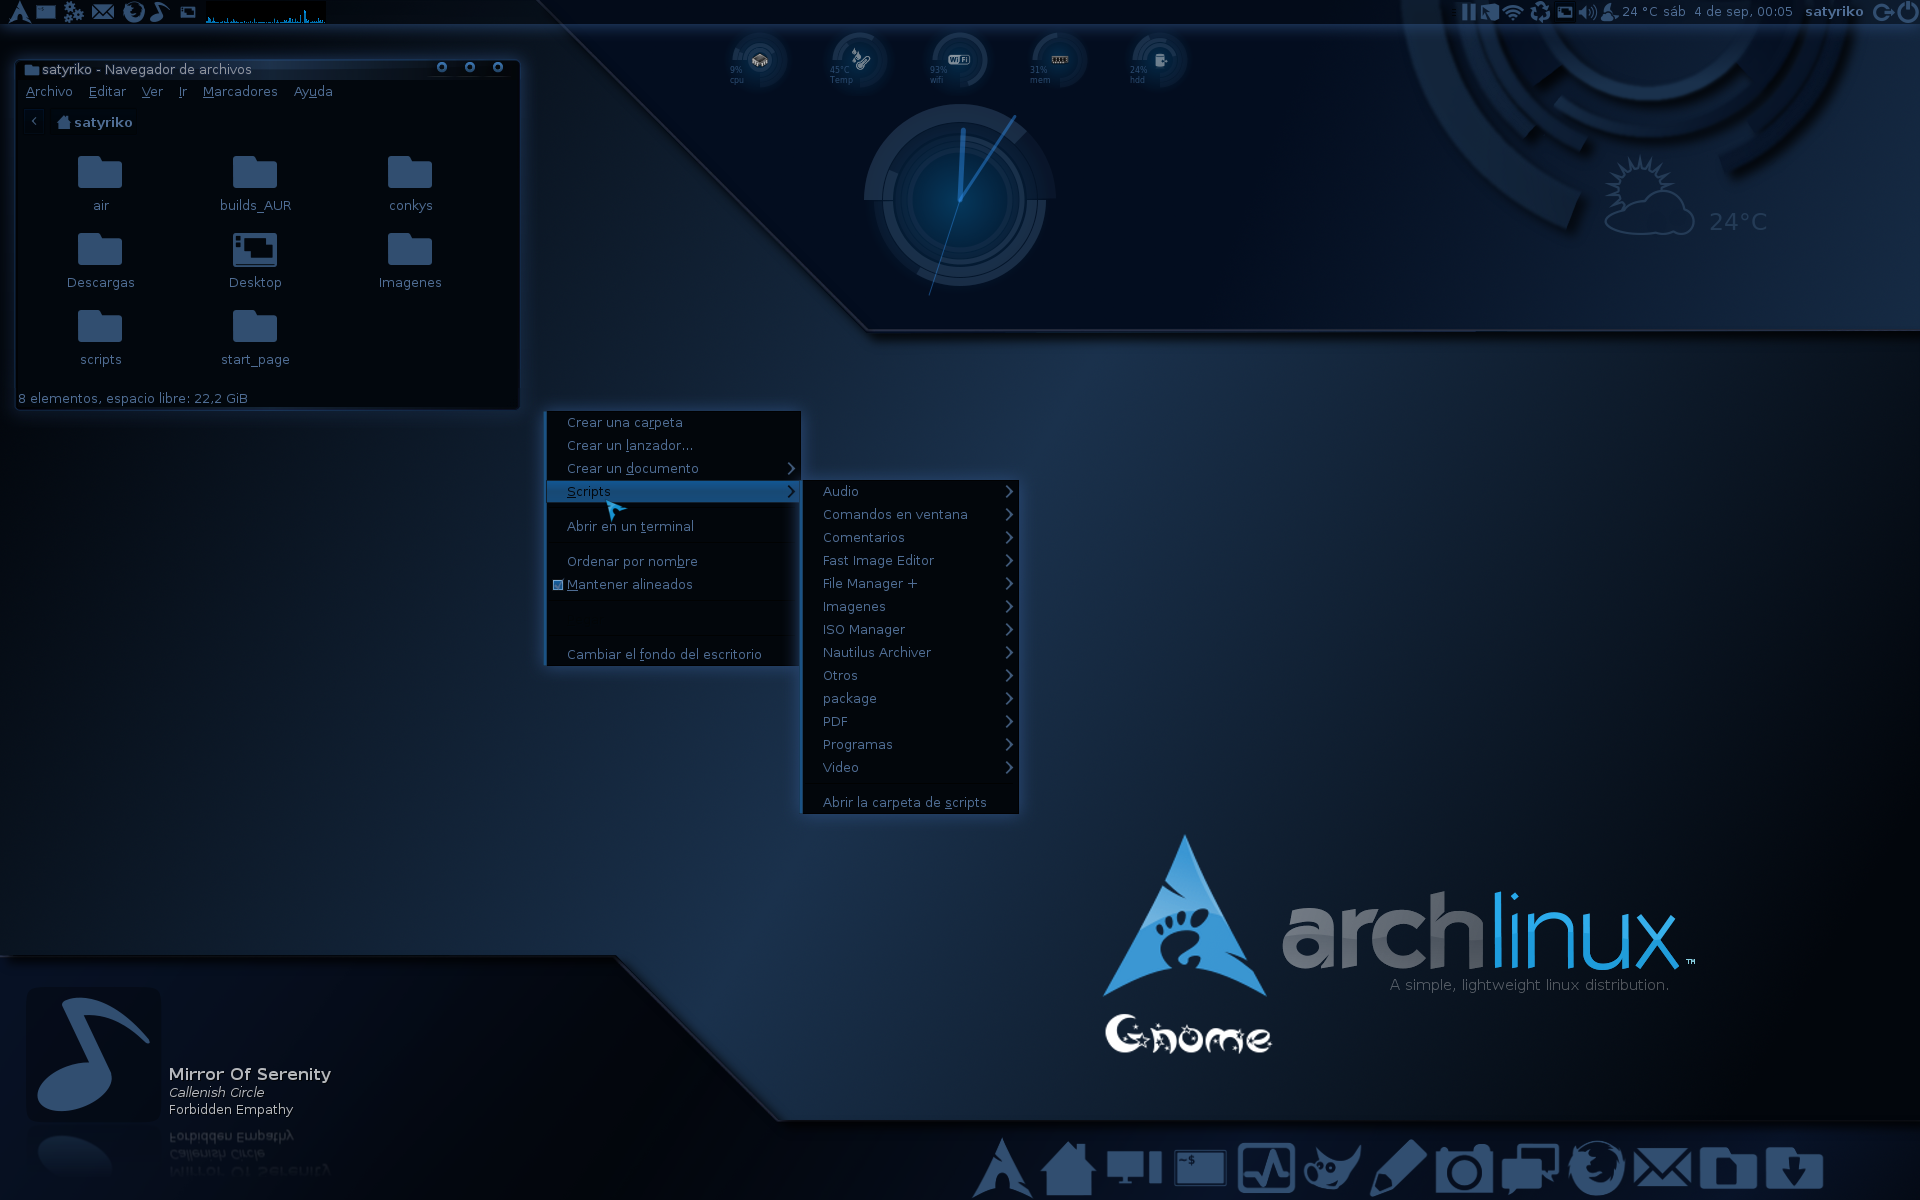 Opinions on Arch LinuxWhat do you think of Arch Linux?